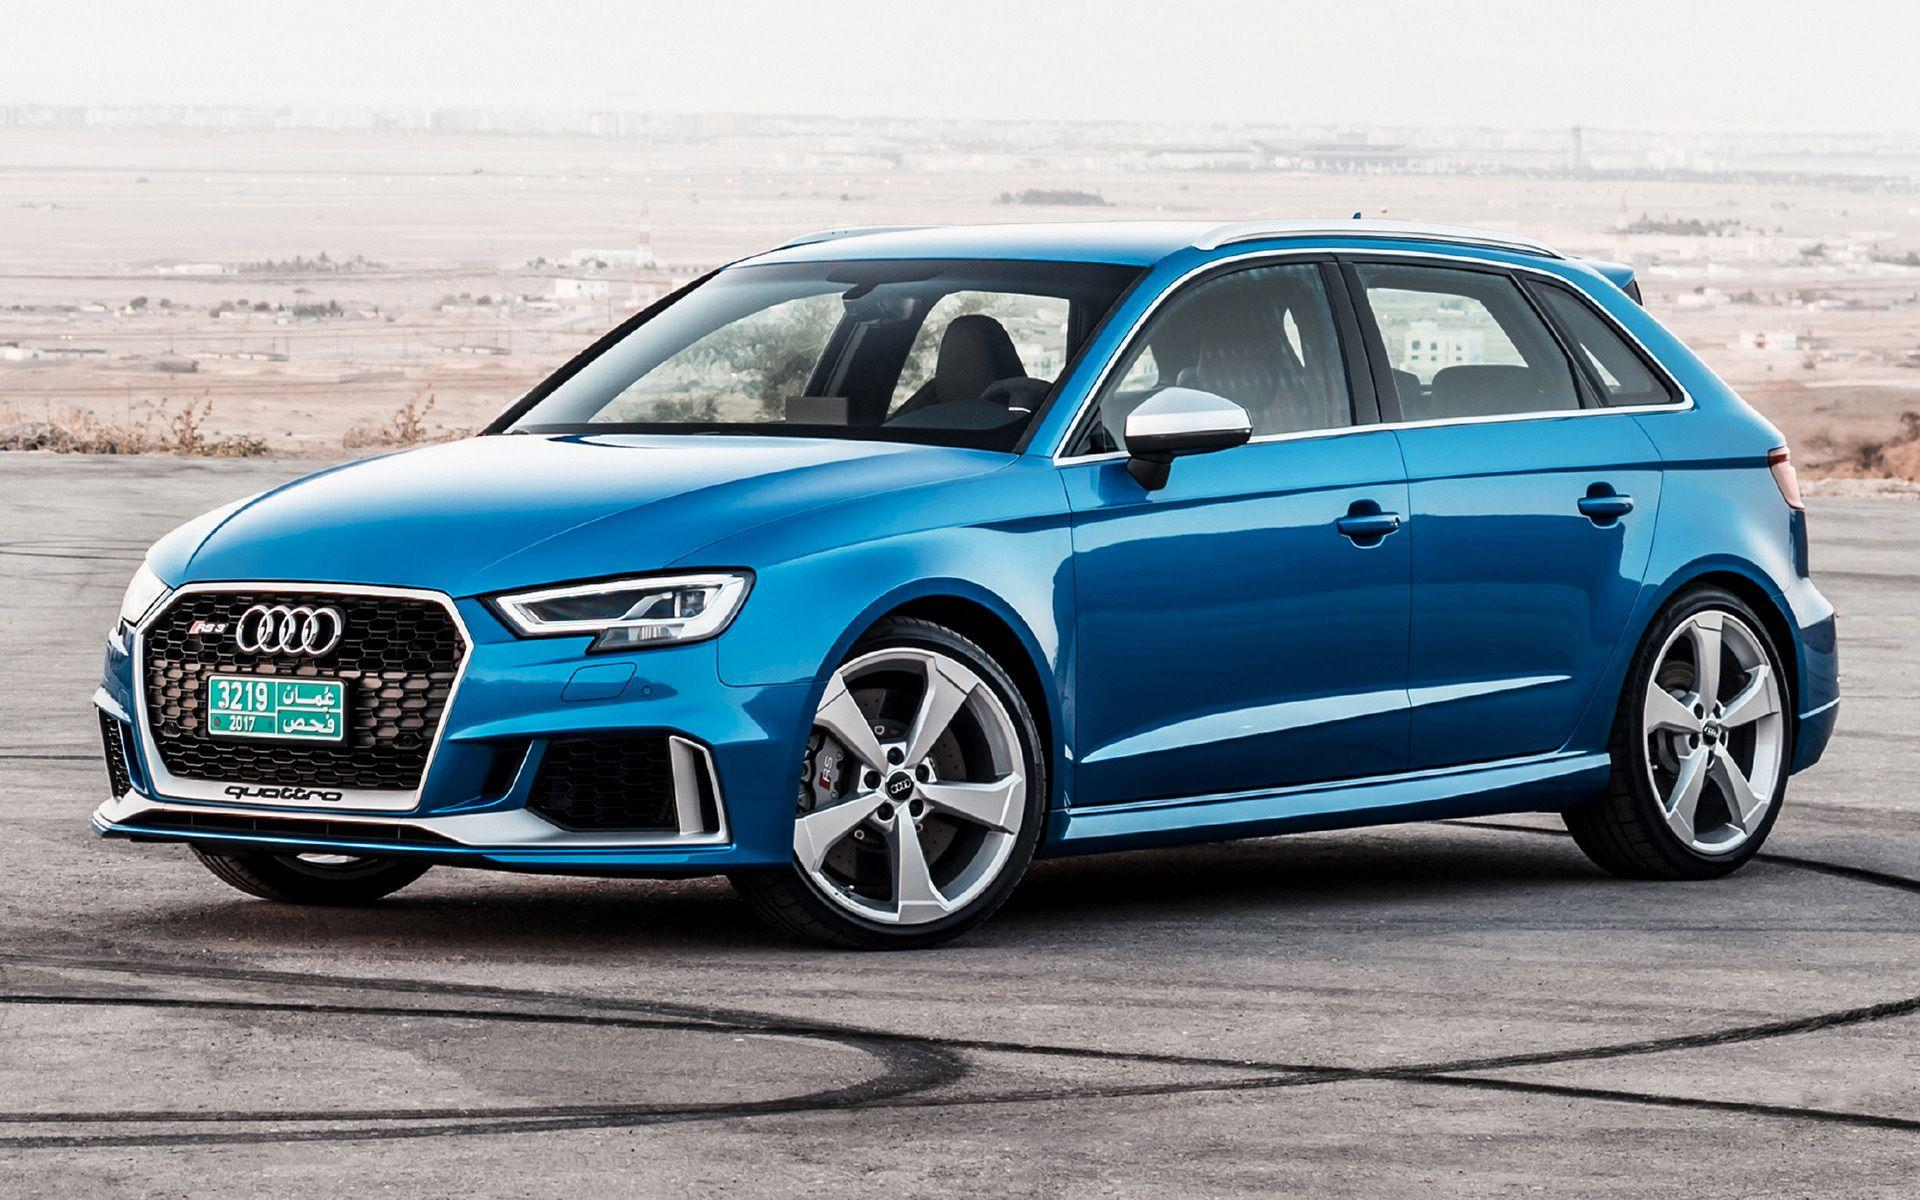 Audi Rs3 Wallpaper.1920x1080 Red Audi RS3 Sportback Night Photo